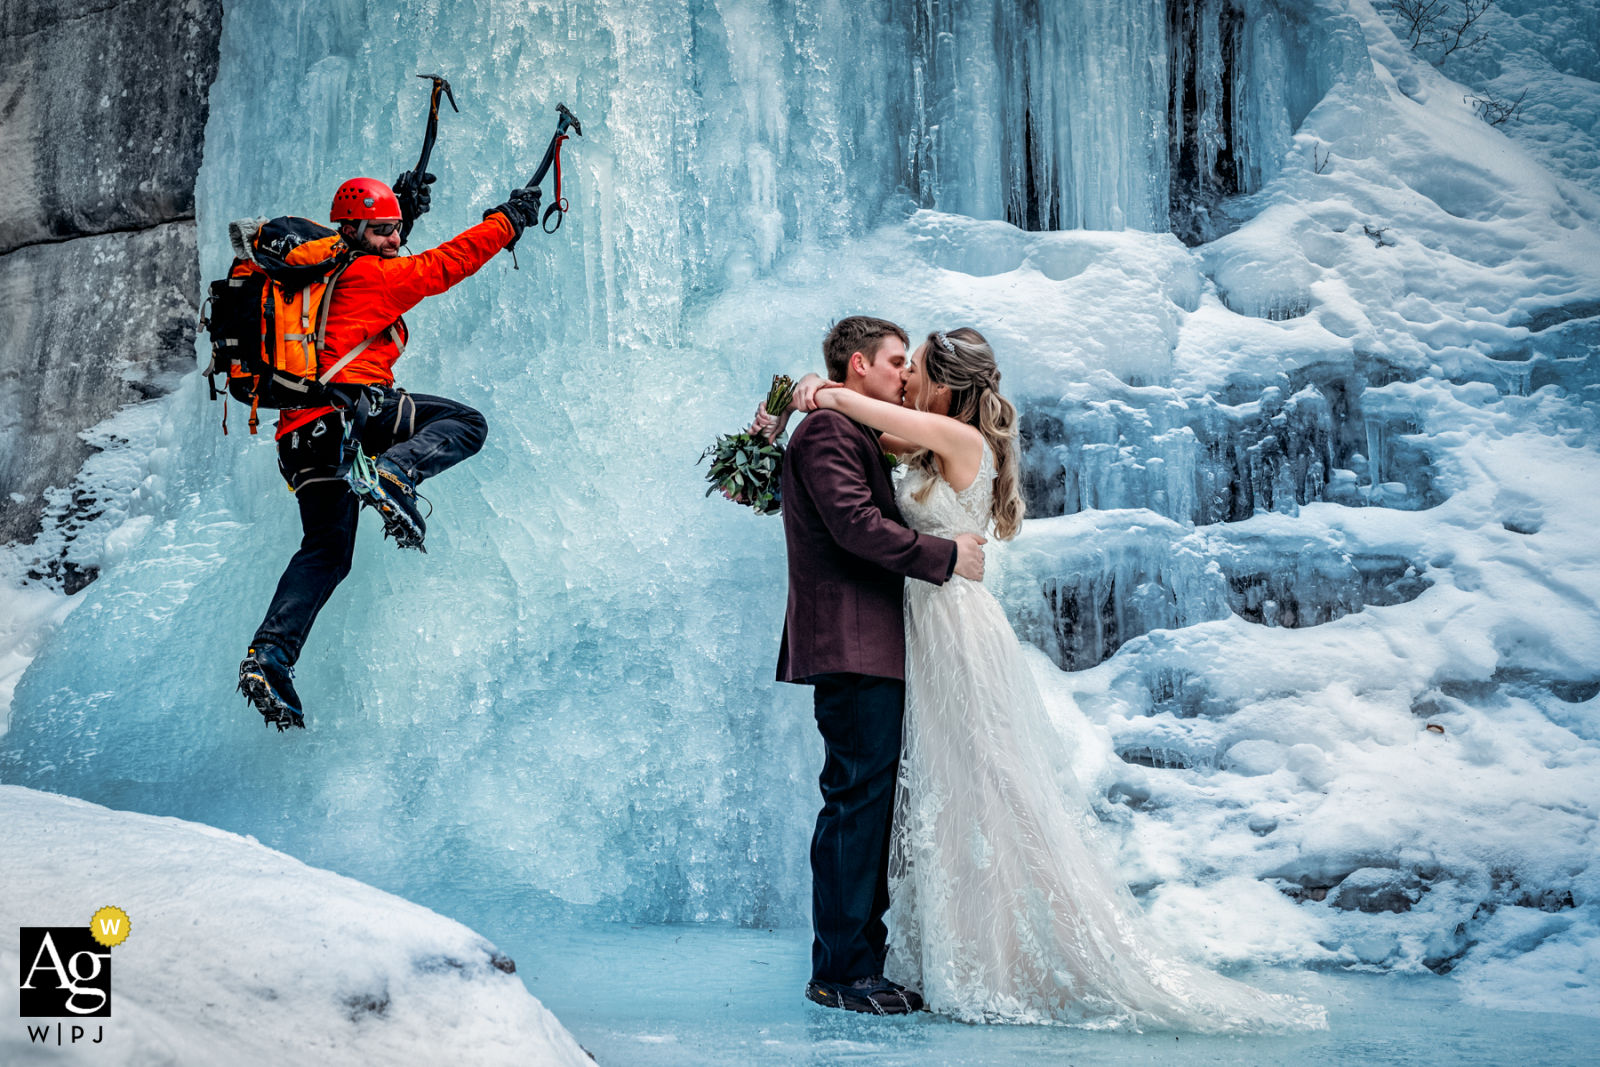 Bride and groom and ice climber in an artistic wedding photo from Maligne Canyon, AB, Canada